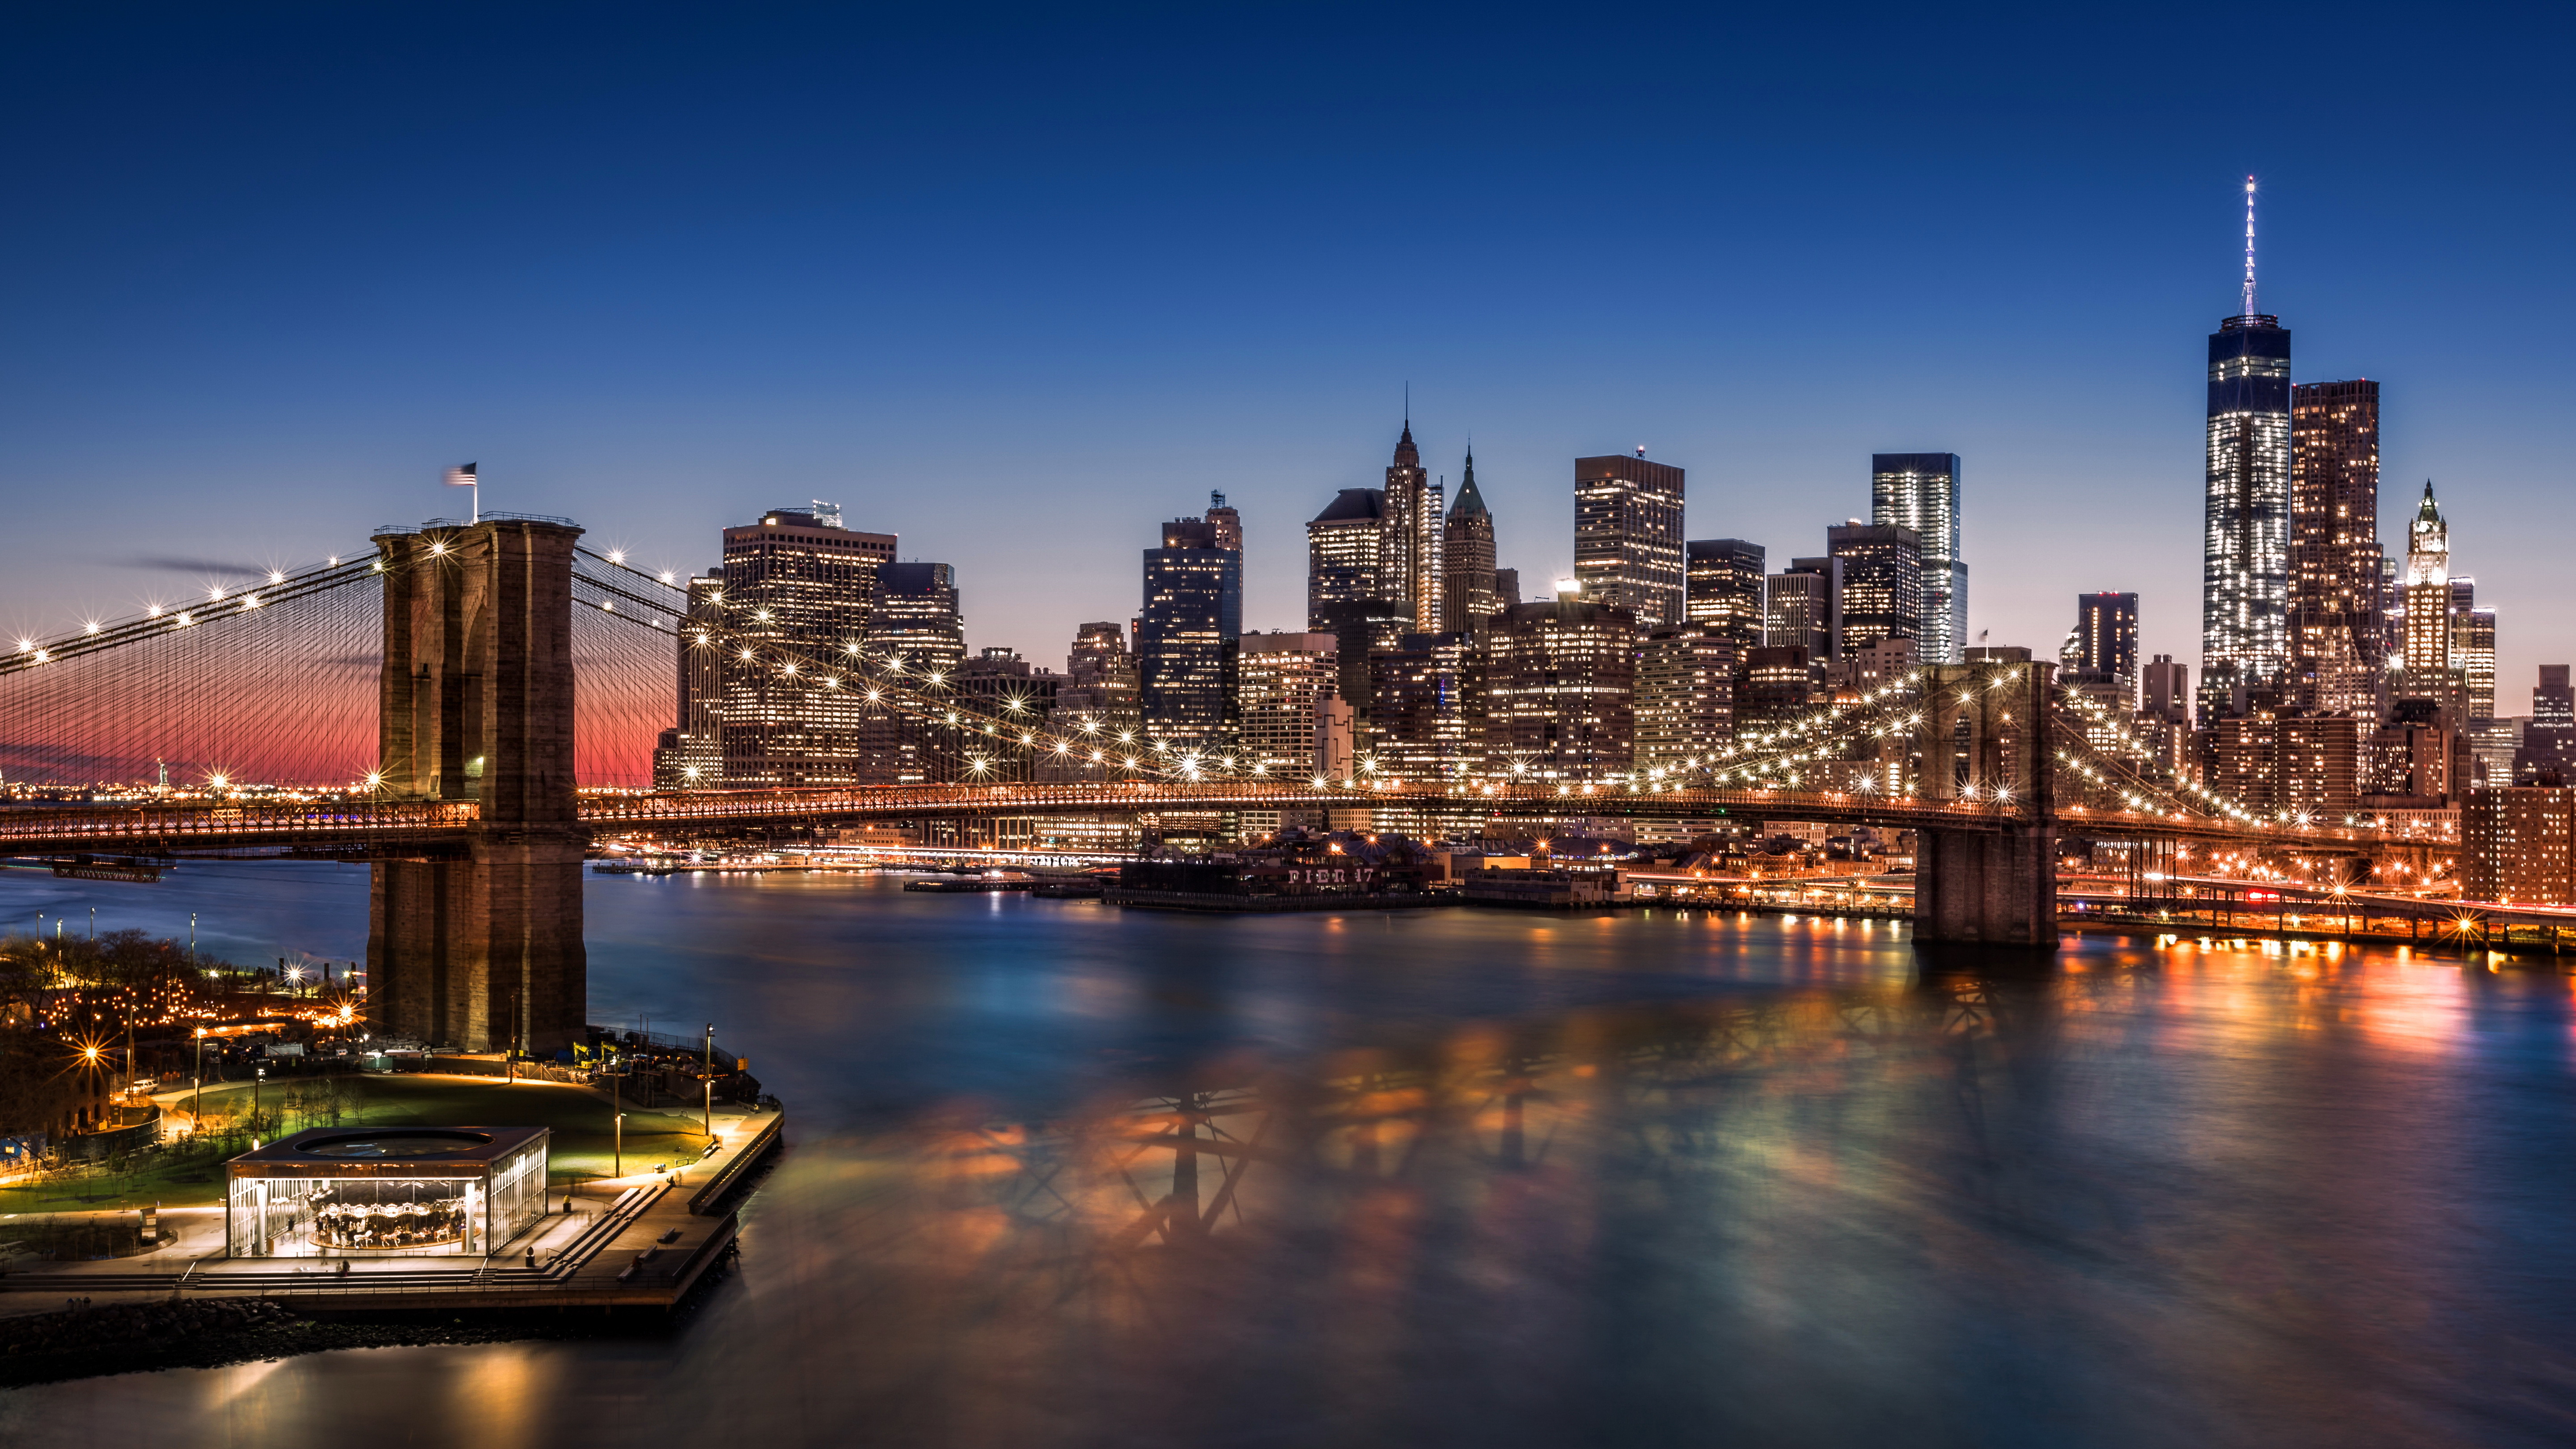 new york usa night city lights wallpapers city   download 5760x3240